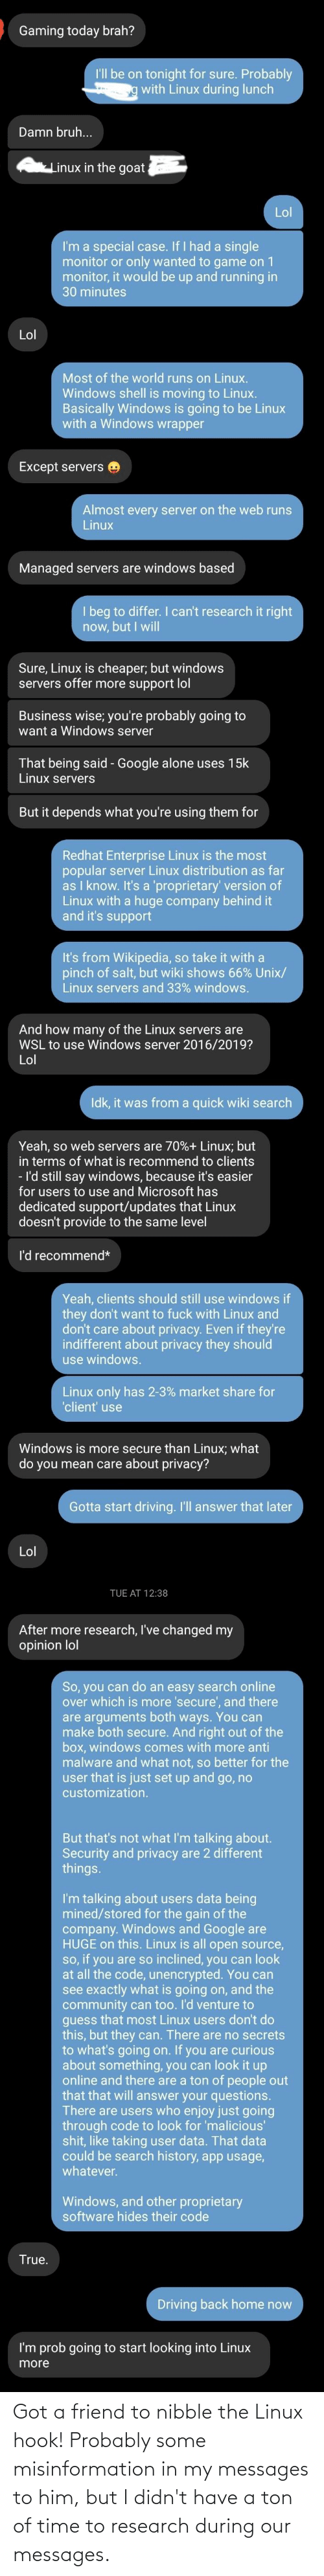 misinformation: Got a friend to nibble the Linux hook! Probably some misinformation in my messages to him, but I didn't have a ton of time to research during our messages.